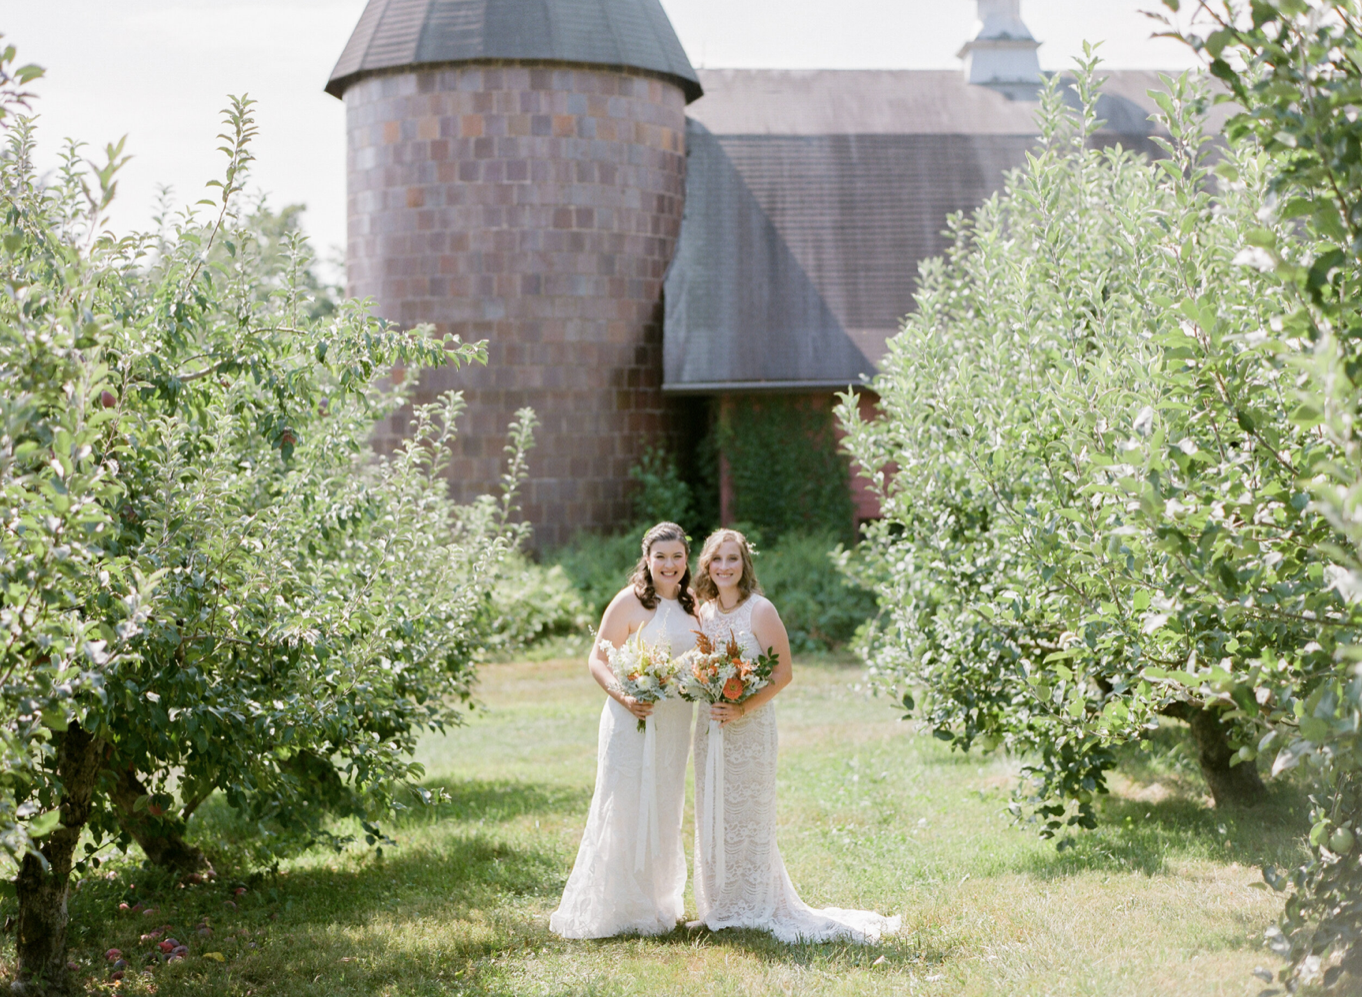 A wedding couple is standing in front of the Quonquont Farm, one of the wedding venues in Massachusetts.